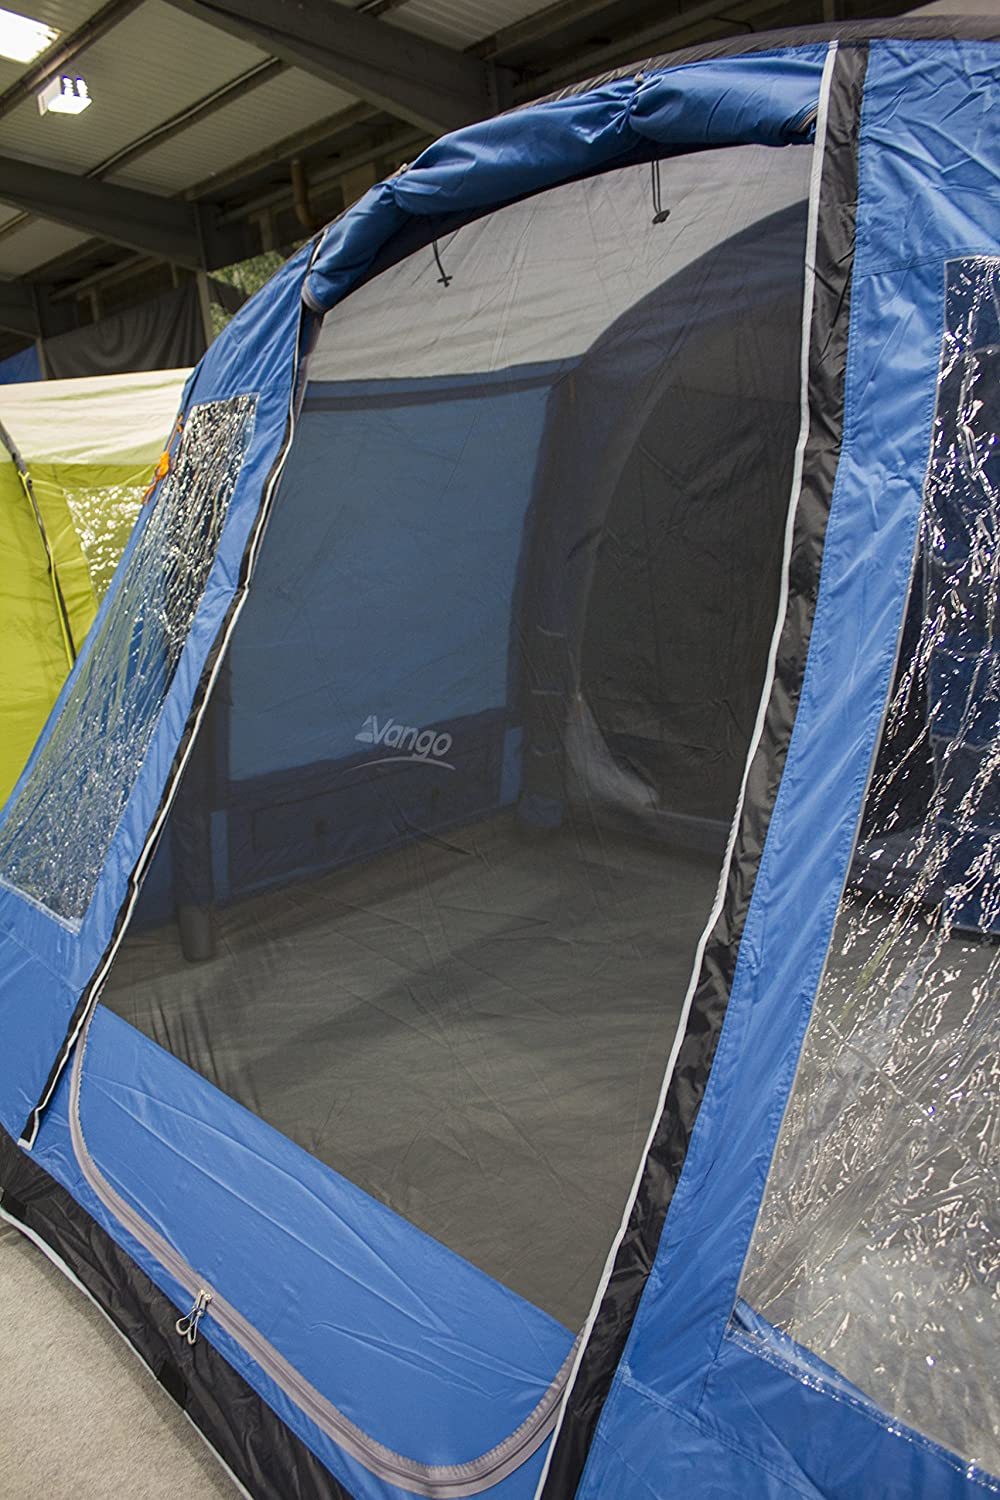 Vango Unisexe Odyssey Airbeam Deluxe Gonflable Tente Bleu Ciel Taille 600